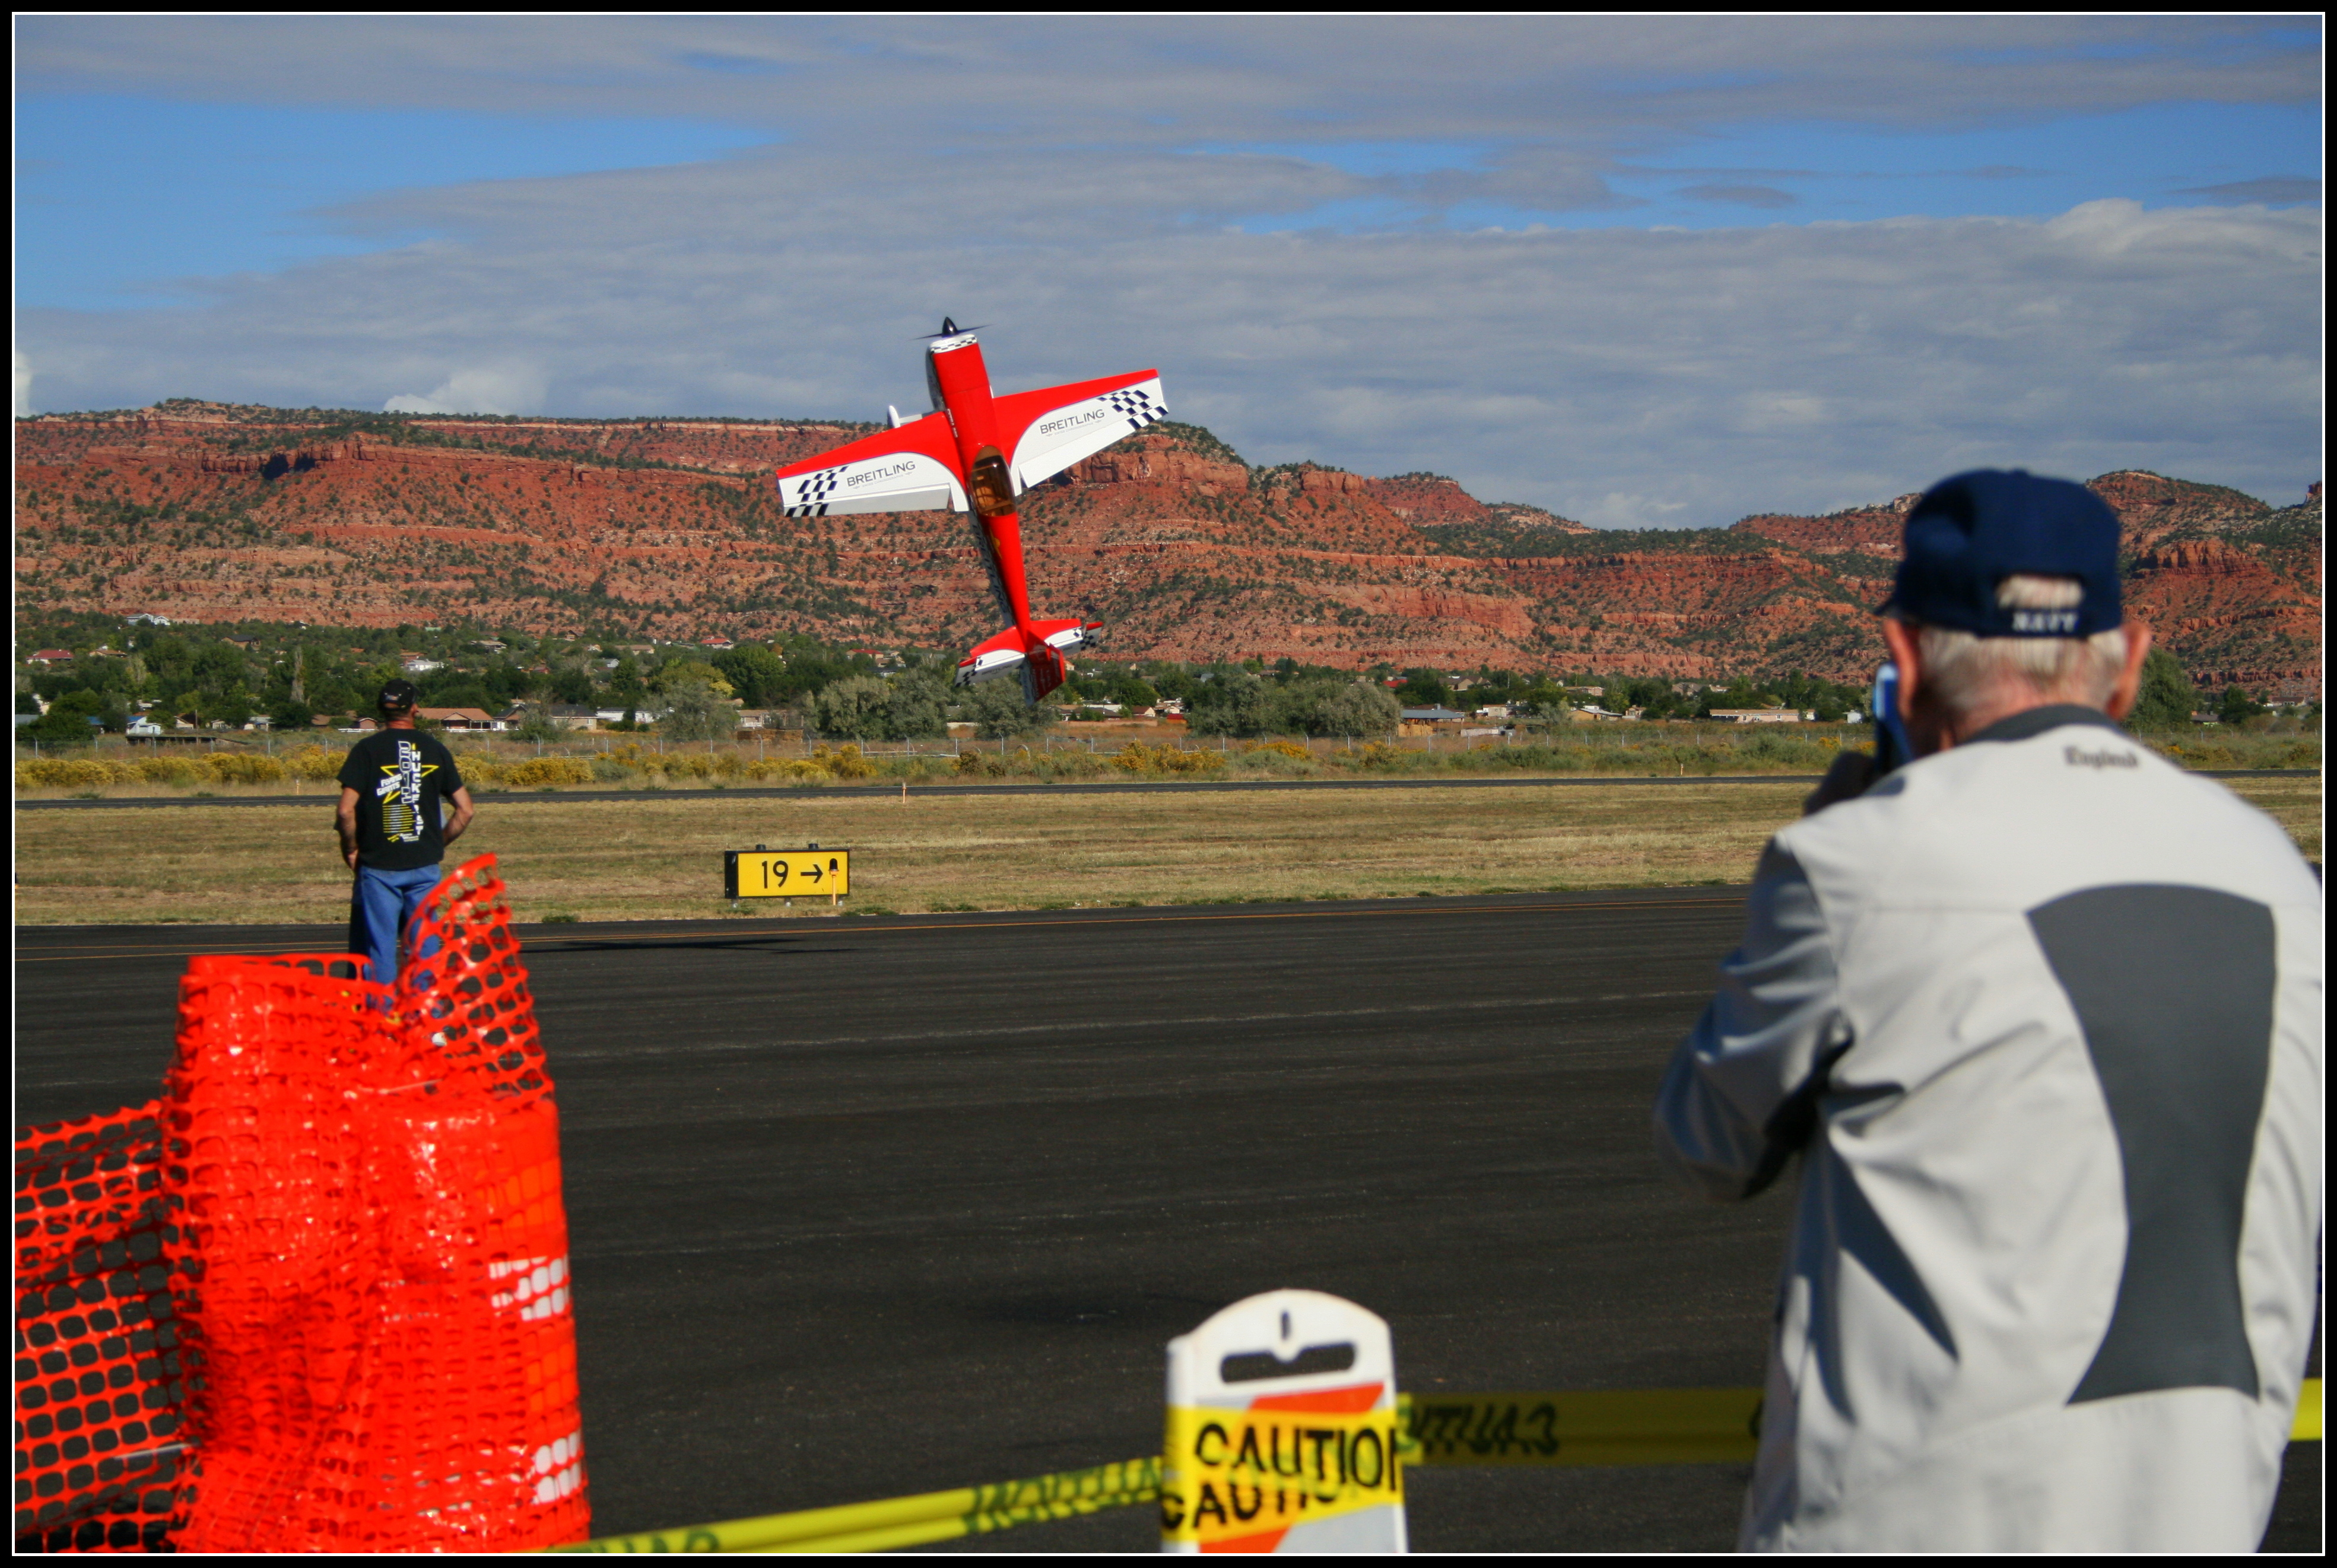 Our Visit To Kanab Utah Dave Diane Throwing Caution The Wind Being In Radio Control Since Mid 70 S 70s Img 8652 8612 8610